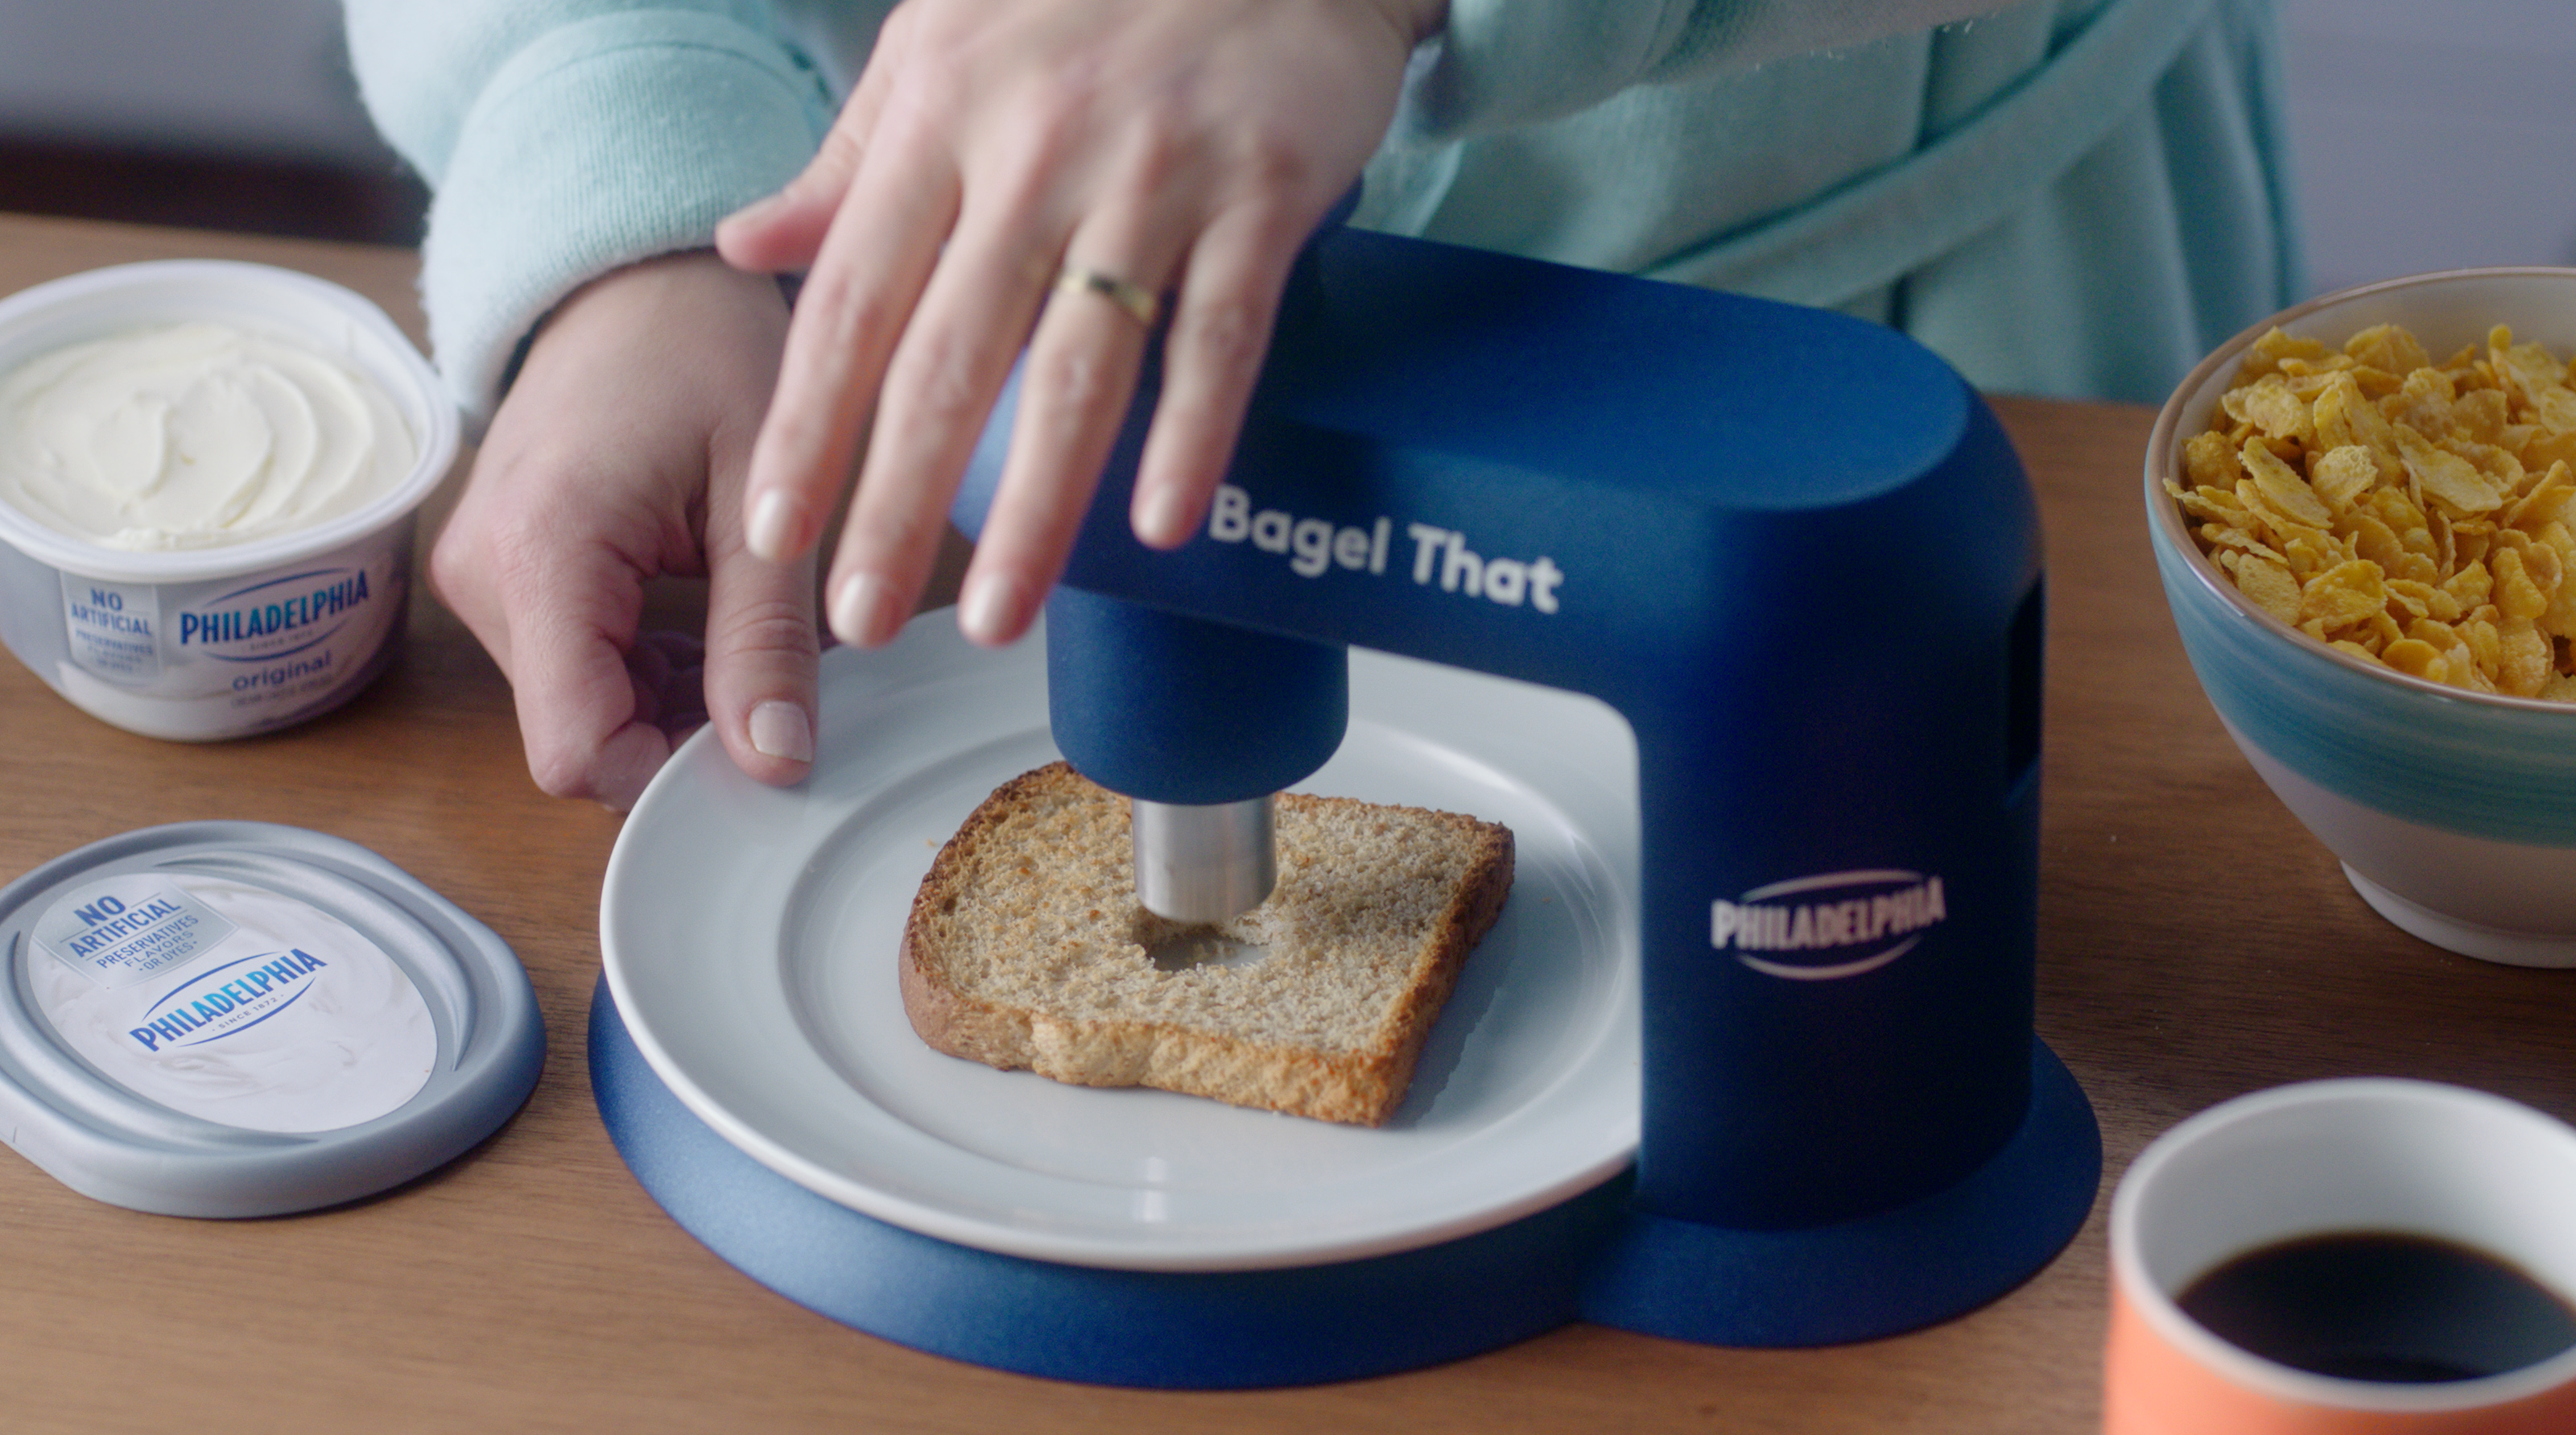 Philadelphia Cream Cheese Rolls Out a Device That Makes Any Food into a Bagel